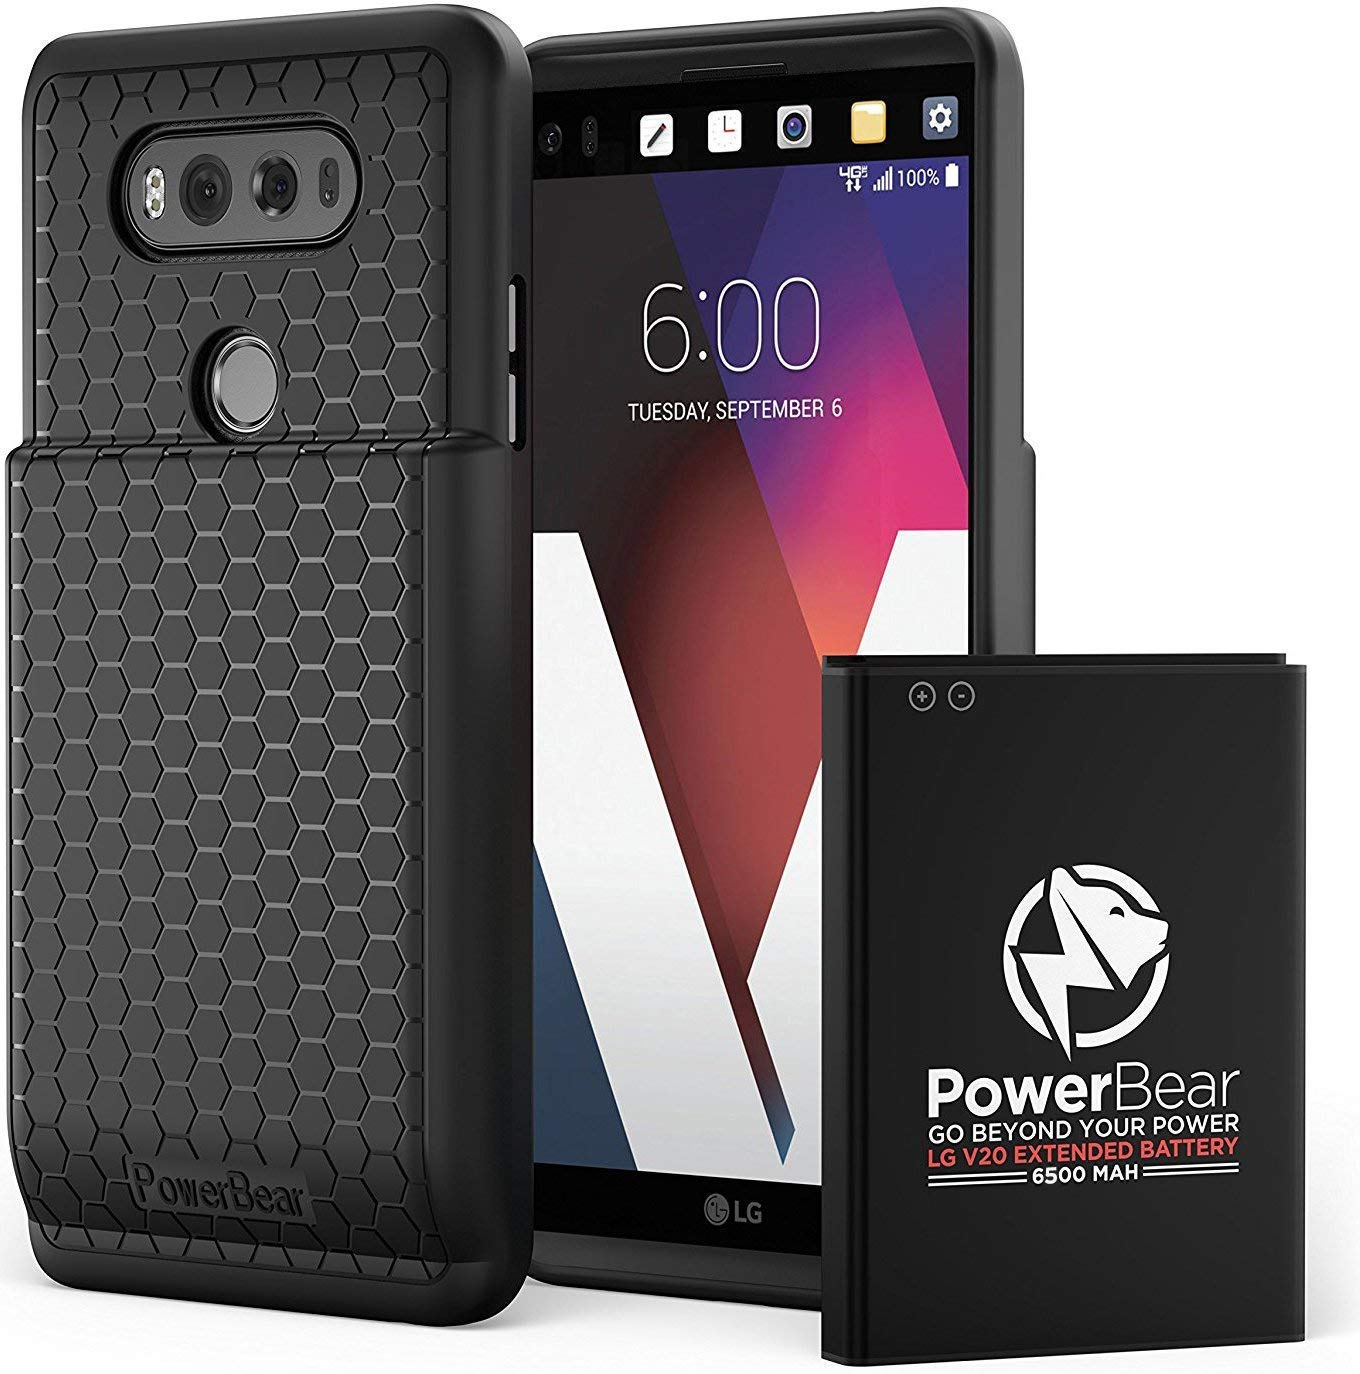 new product 9fb6c 0c528 PowerBear LG V20 Extended Battery [6500mAh] & Back Cover & Protective Case  (Up to 2.2X Extra Battery Power) - Black & Screen Protector Included